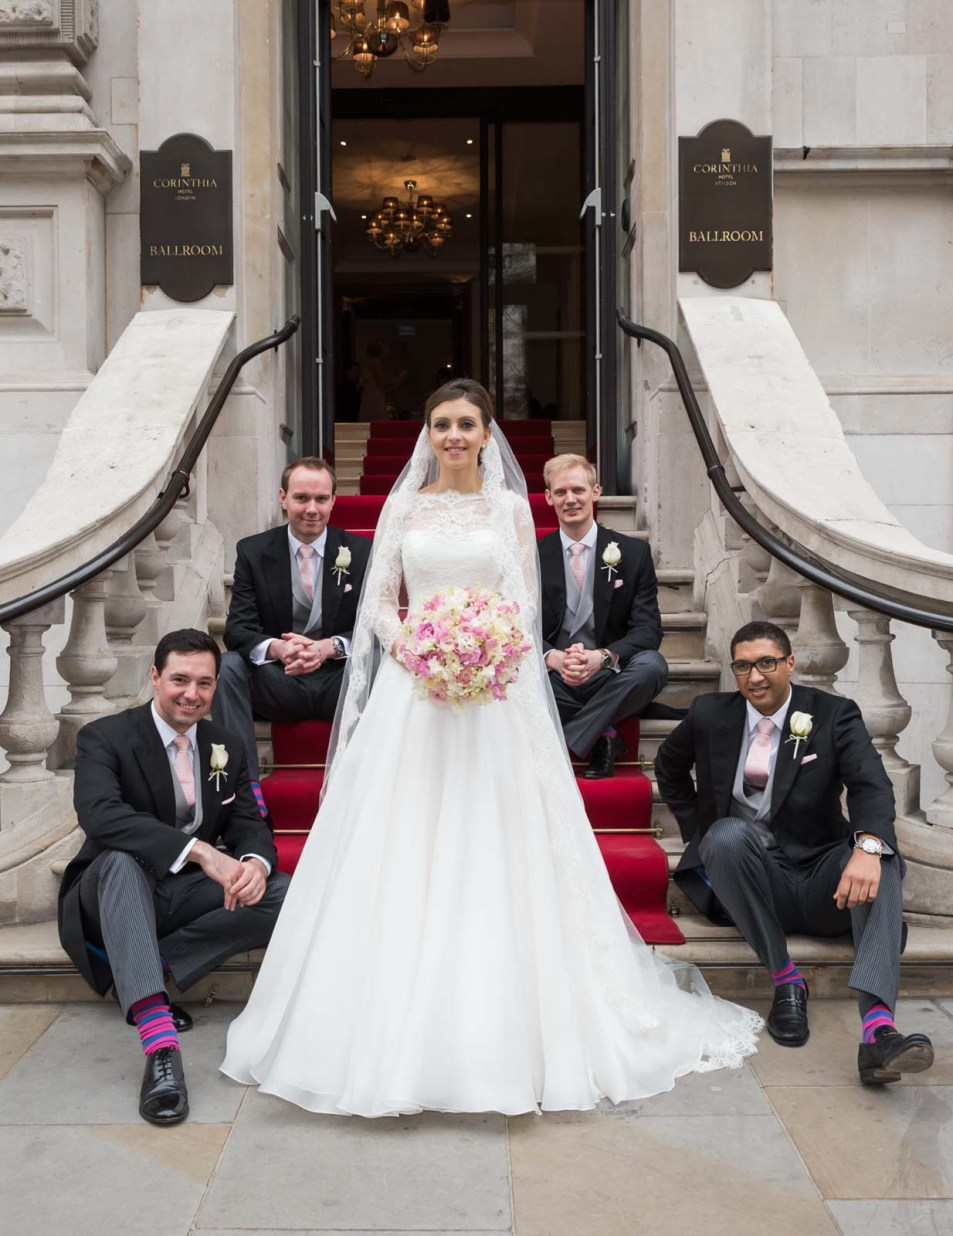 wedding-photographer-london-corinthia-c-18